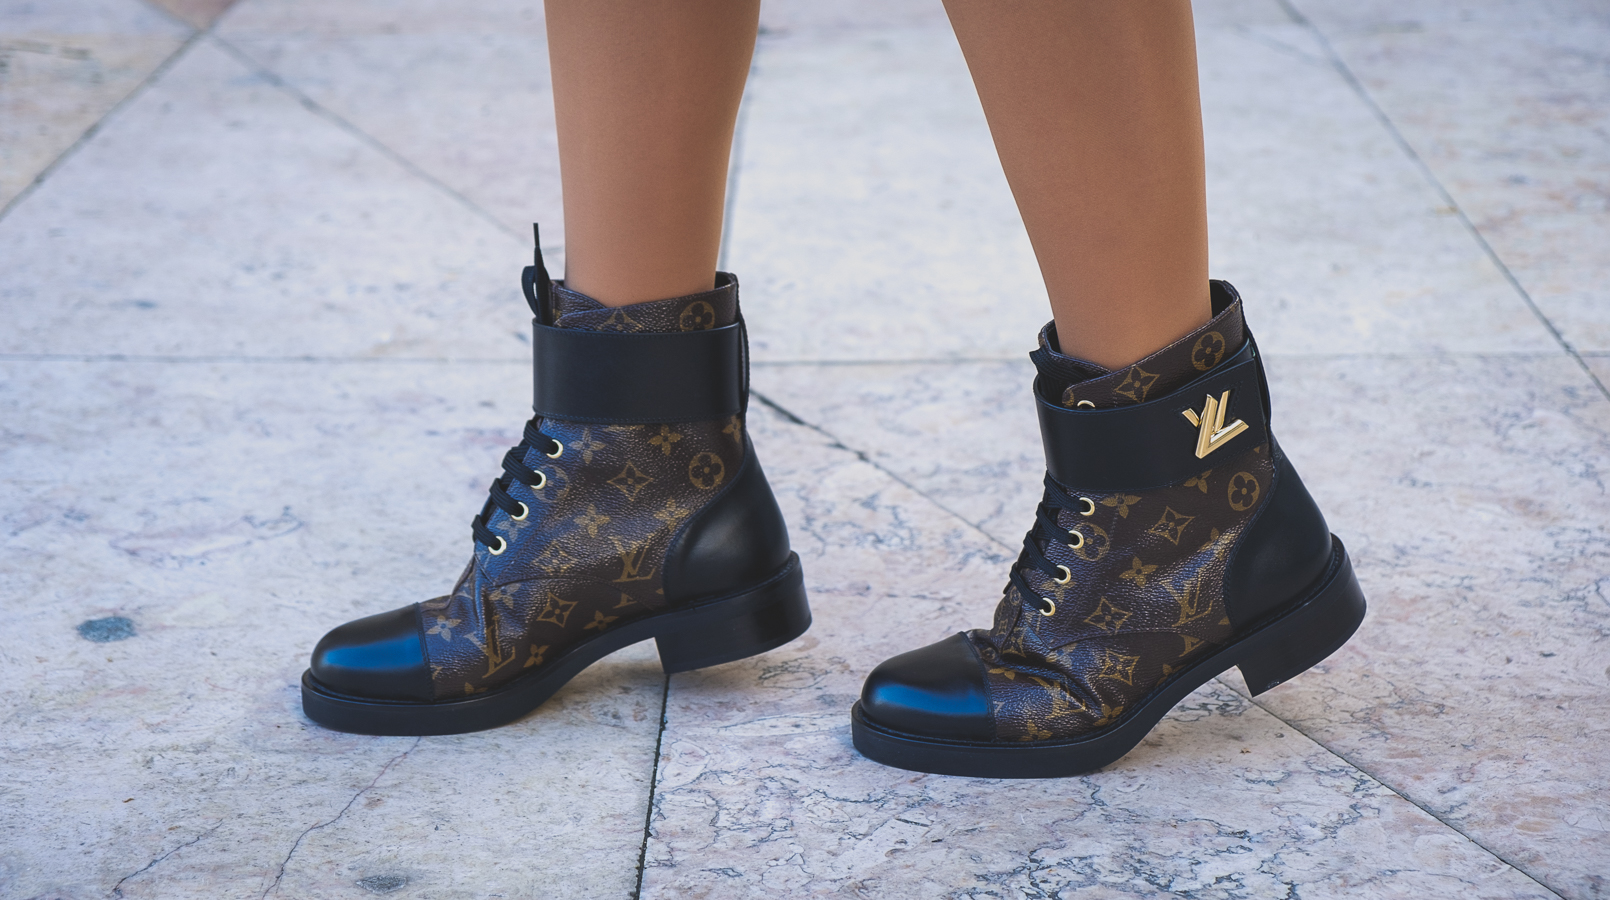 Le Fashionaire Are Louis Vuitton Ranger Plat Wonderland boots worth it? louis vuitton ranger plat wonderland boots 4162F EN